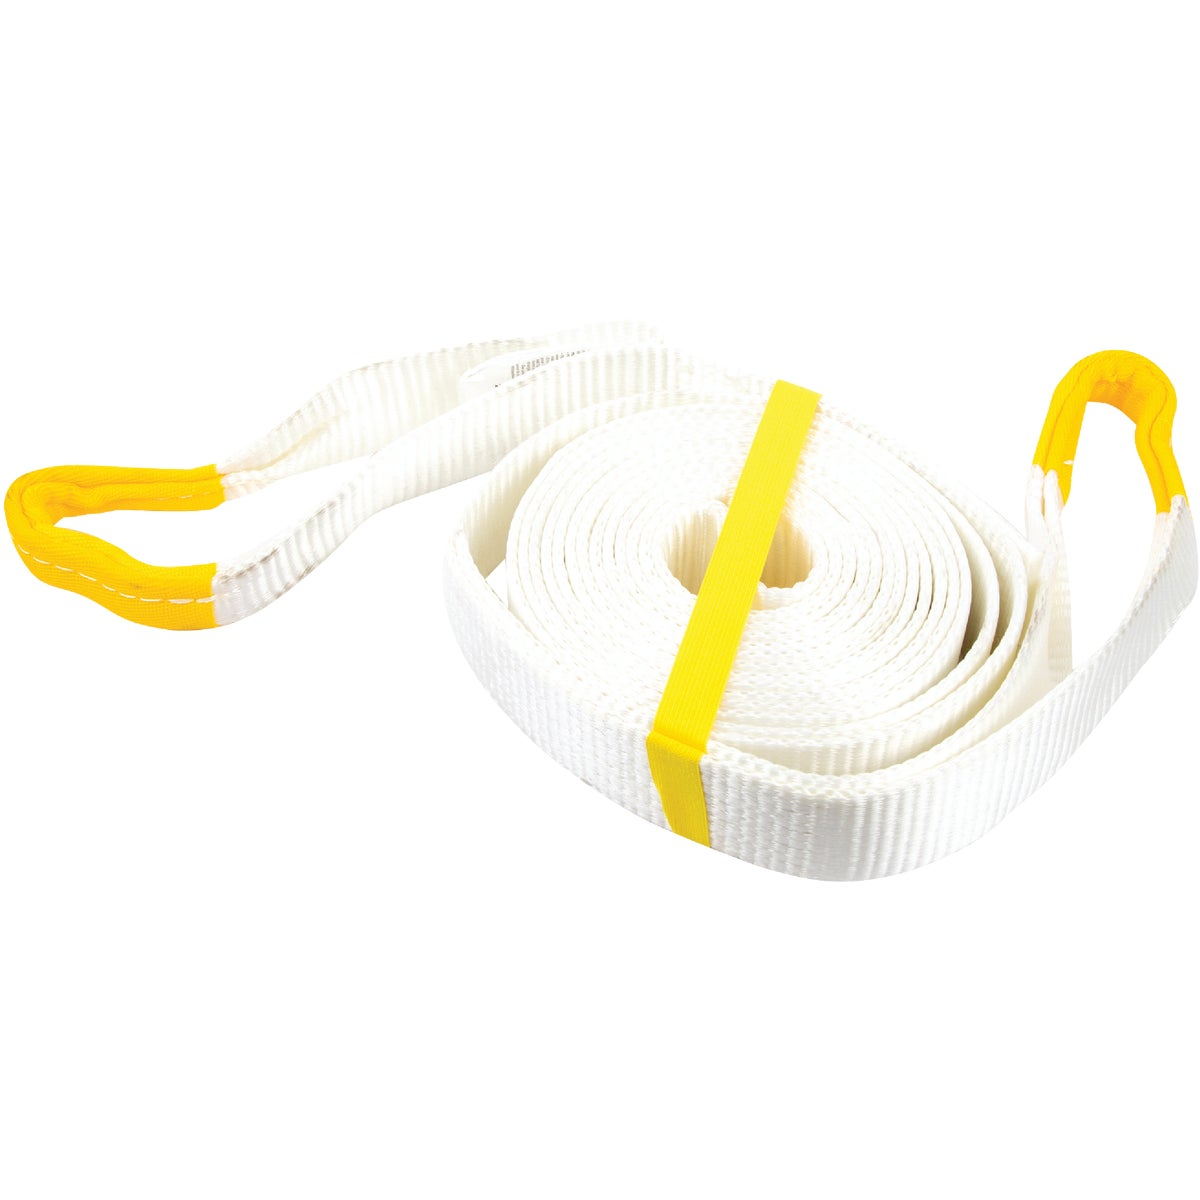 "2""X20' RECOVERY STRAP - 59500 by Erickson Mfg Ltd"